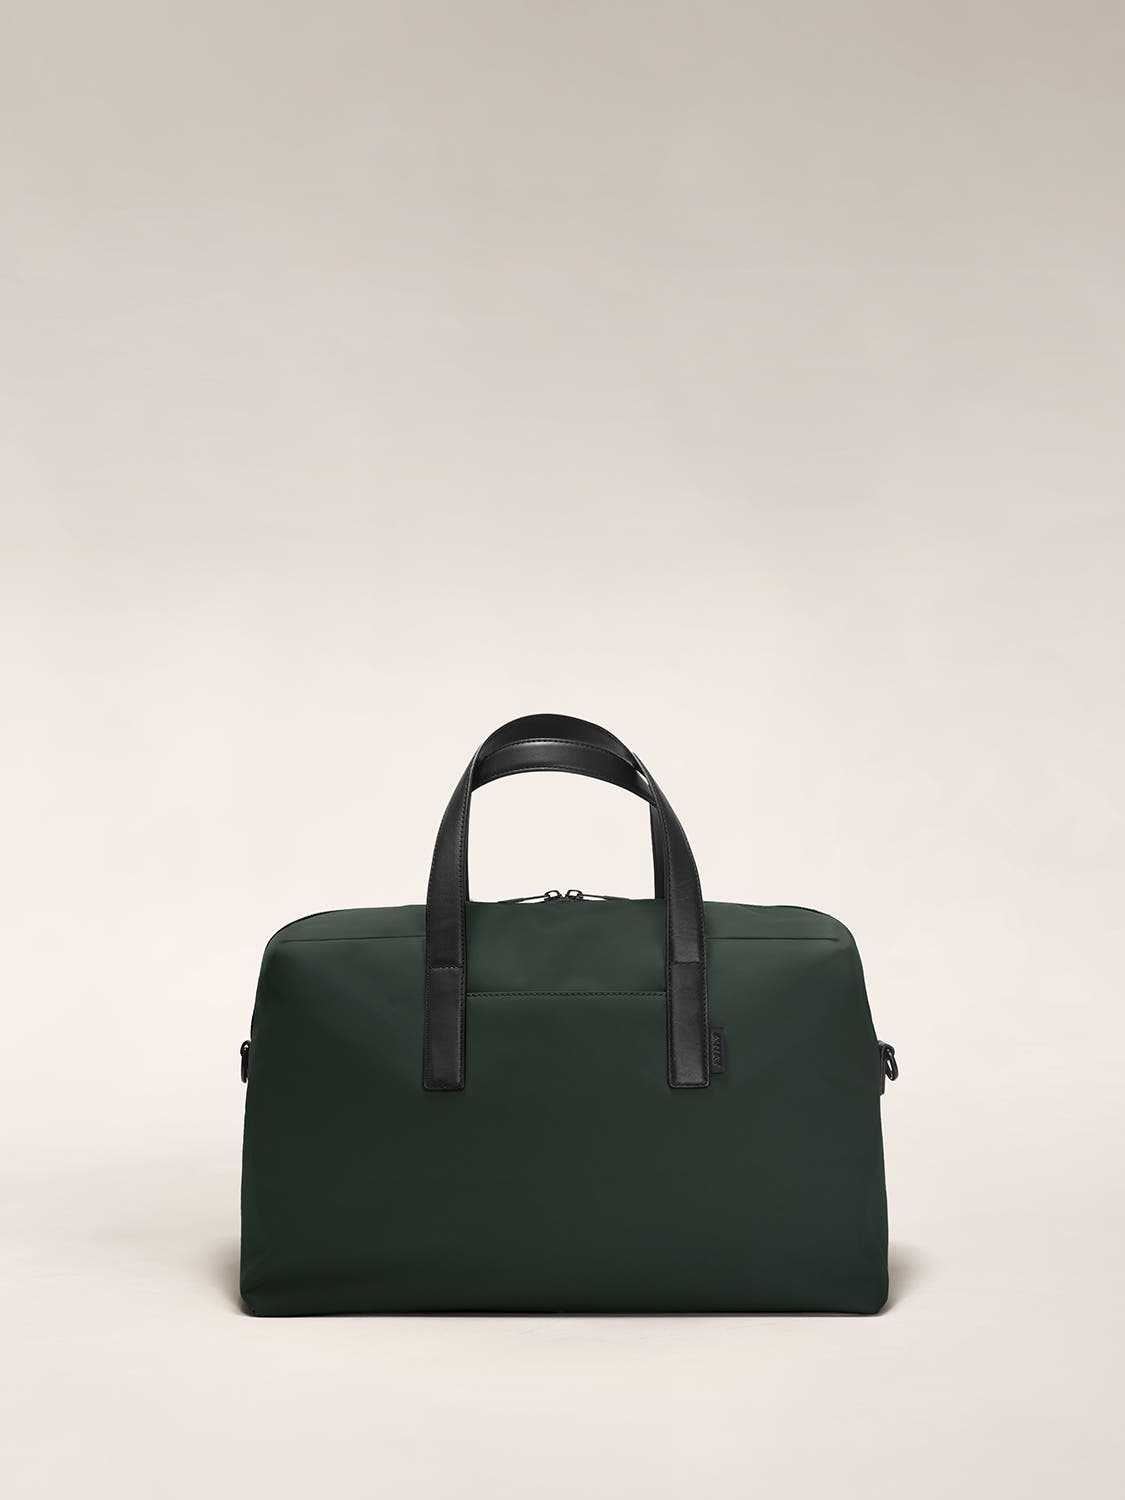 Front of a green duffle bag with raised straps.